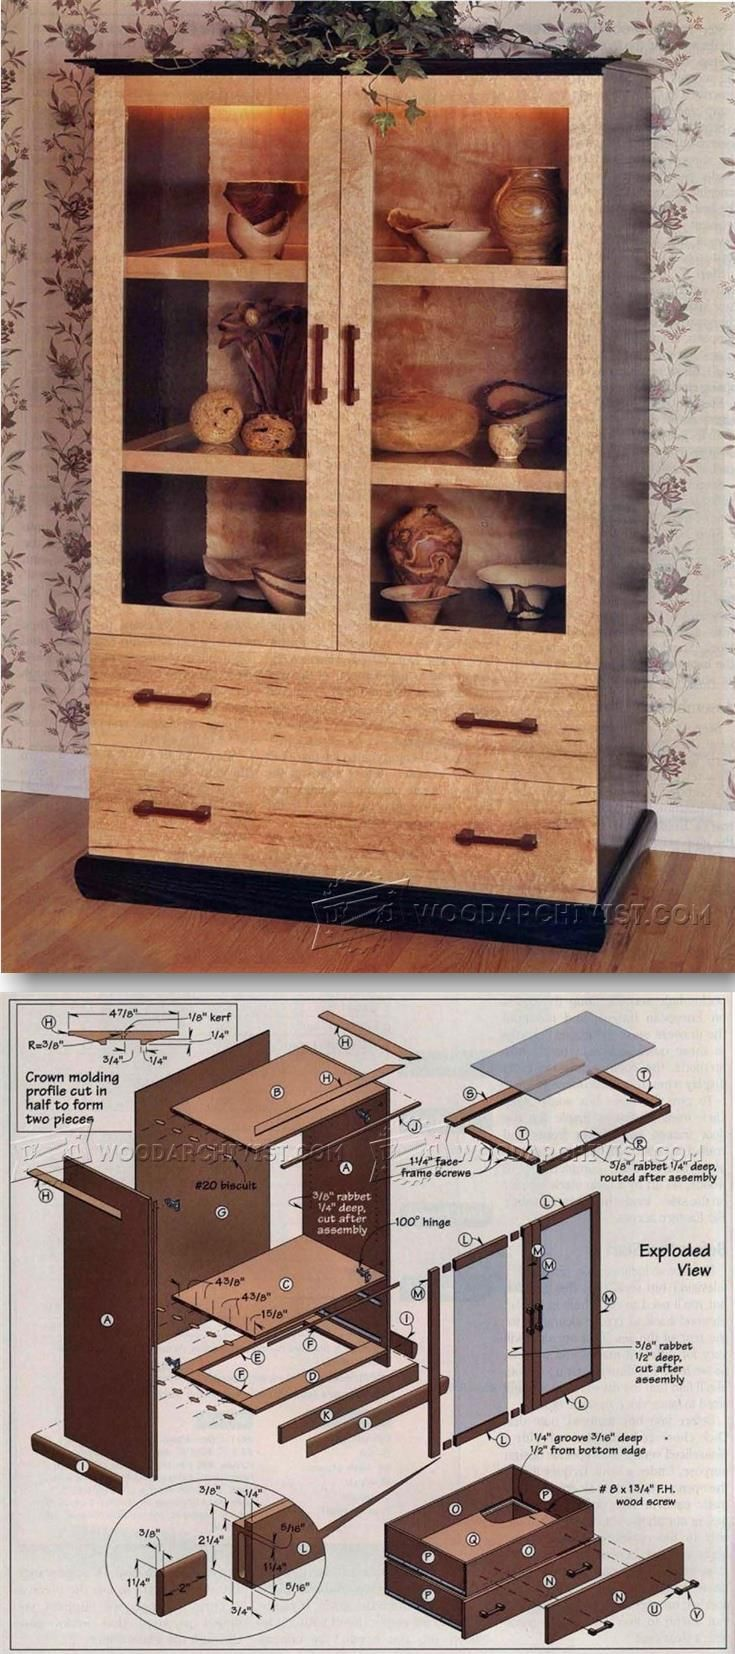 Making Wood Furniture The 25 Best Furniture Plans Ideas On Pinterest Wood Projects